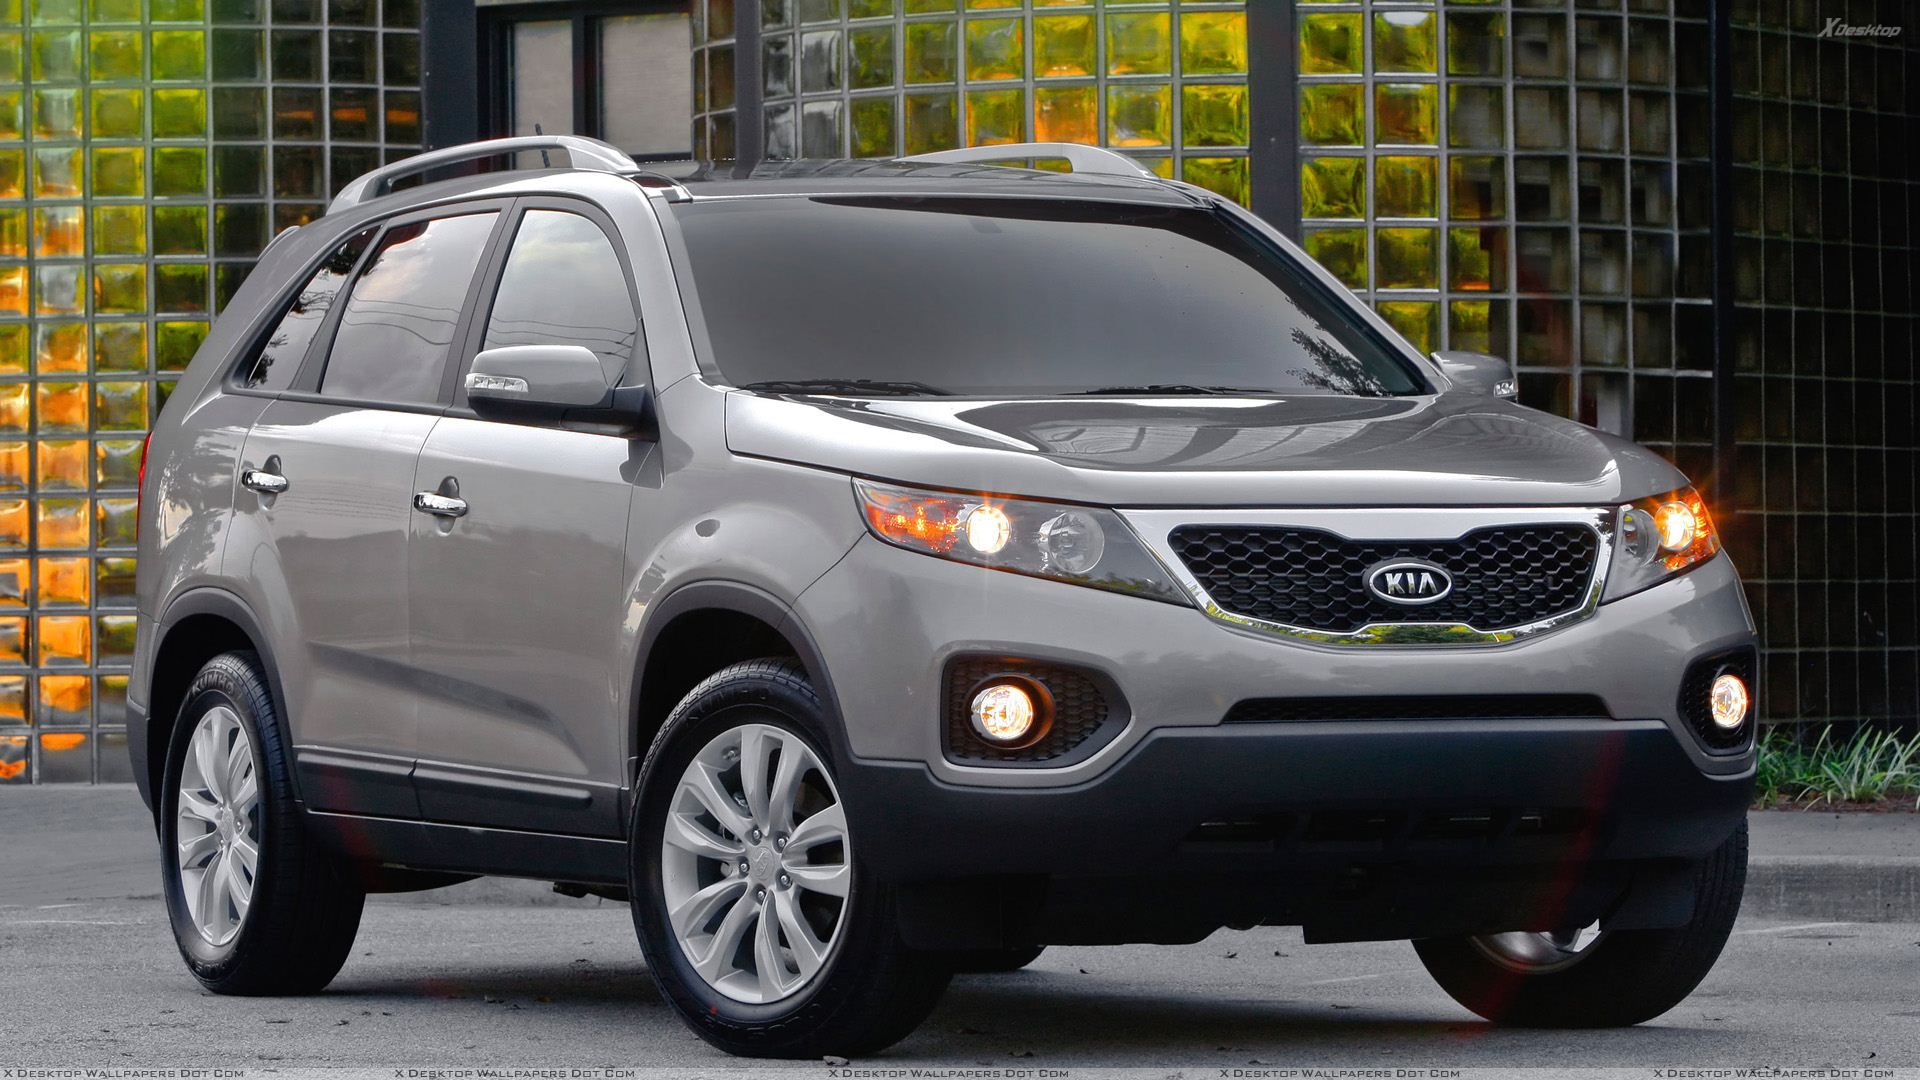 kia sorento 2011 in grey front pose wallpaper. Black Bedroom Furniture Sets. Home Design Ideas